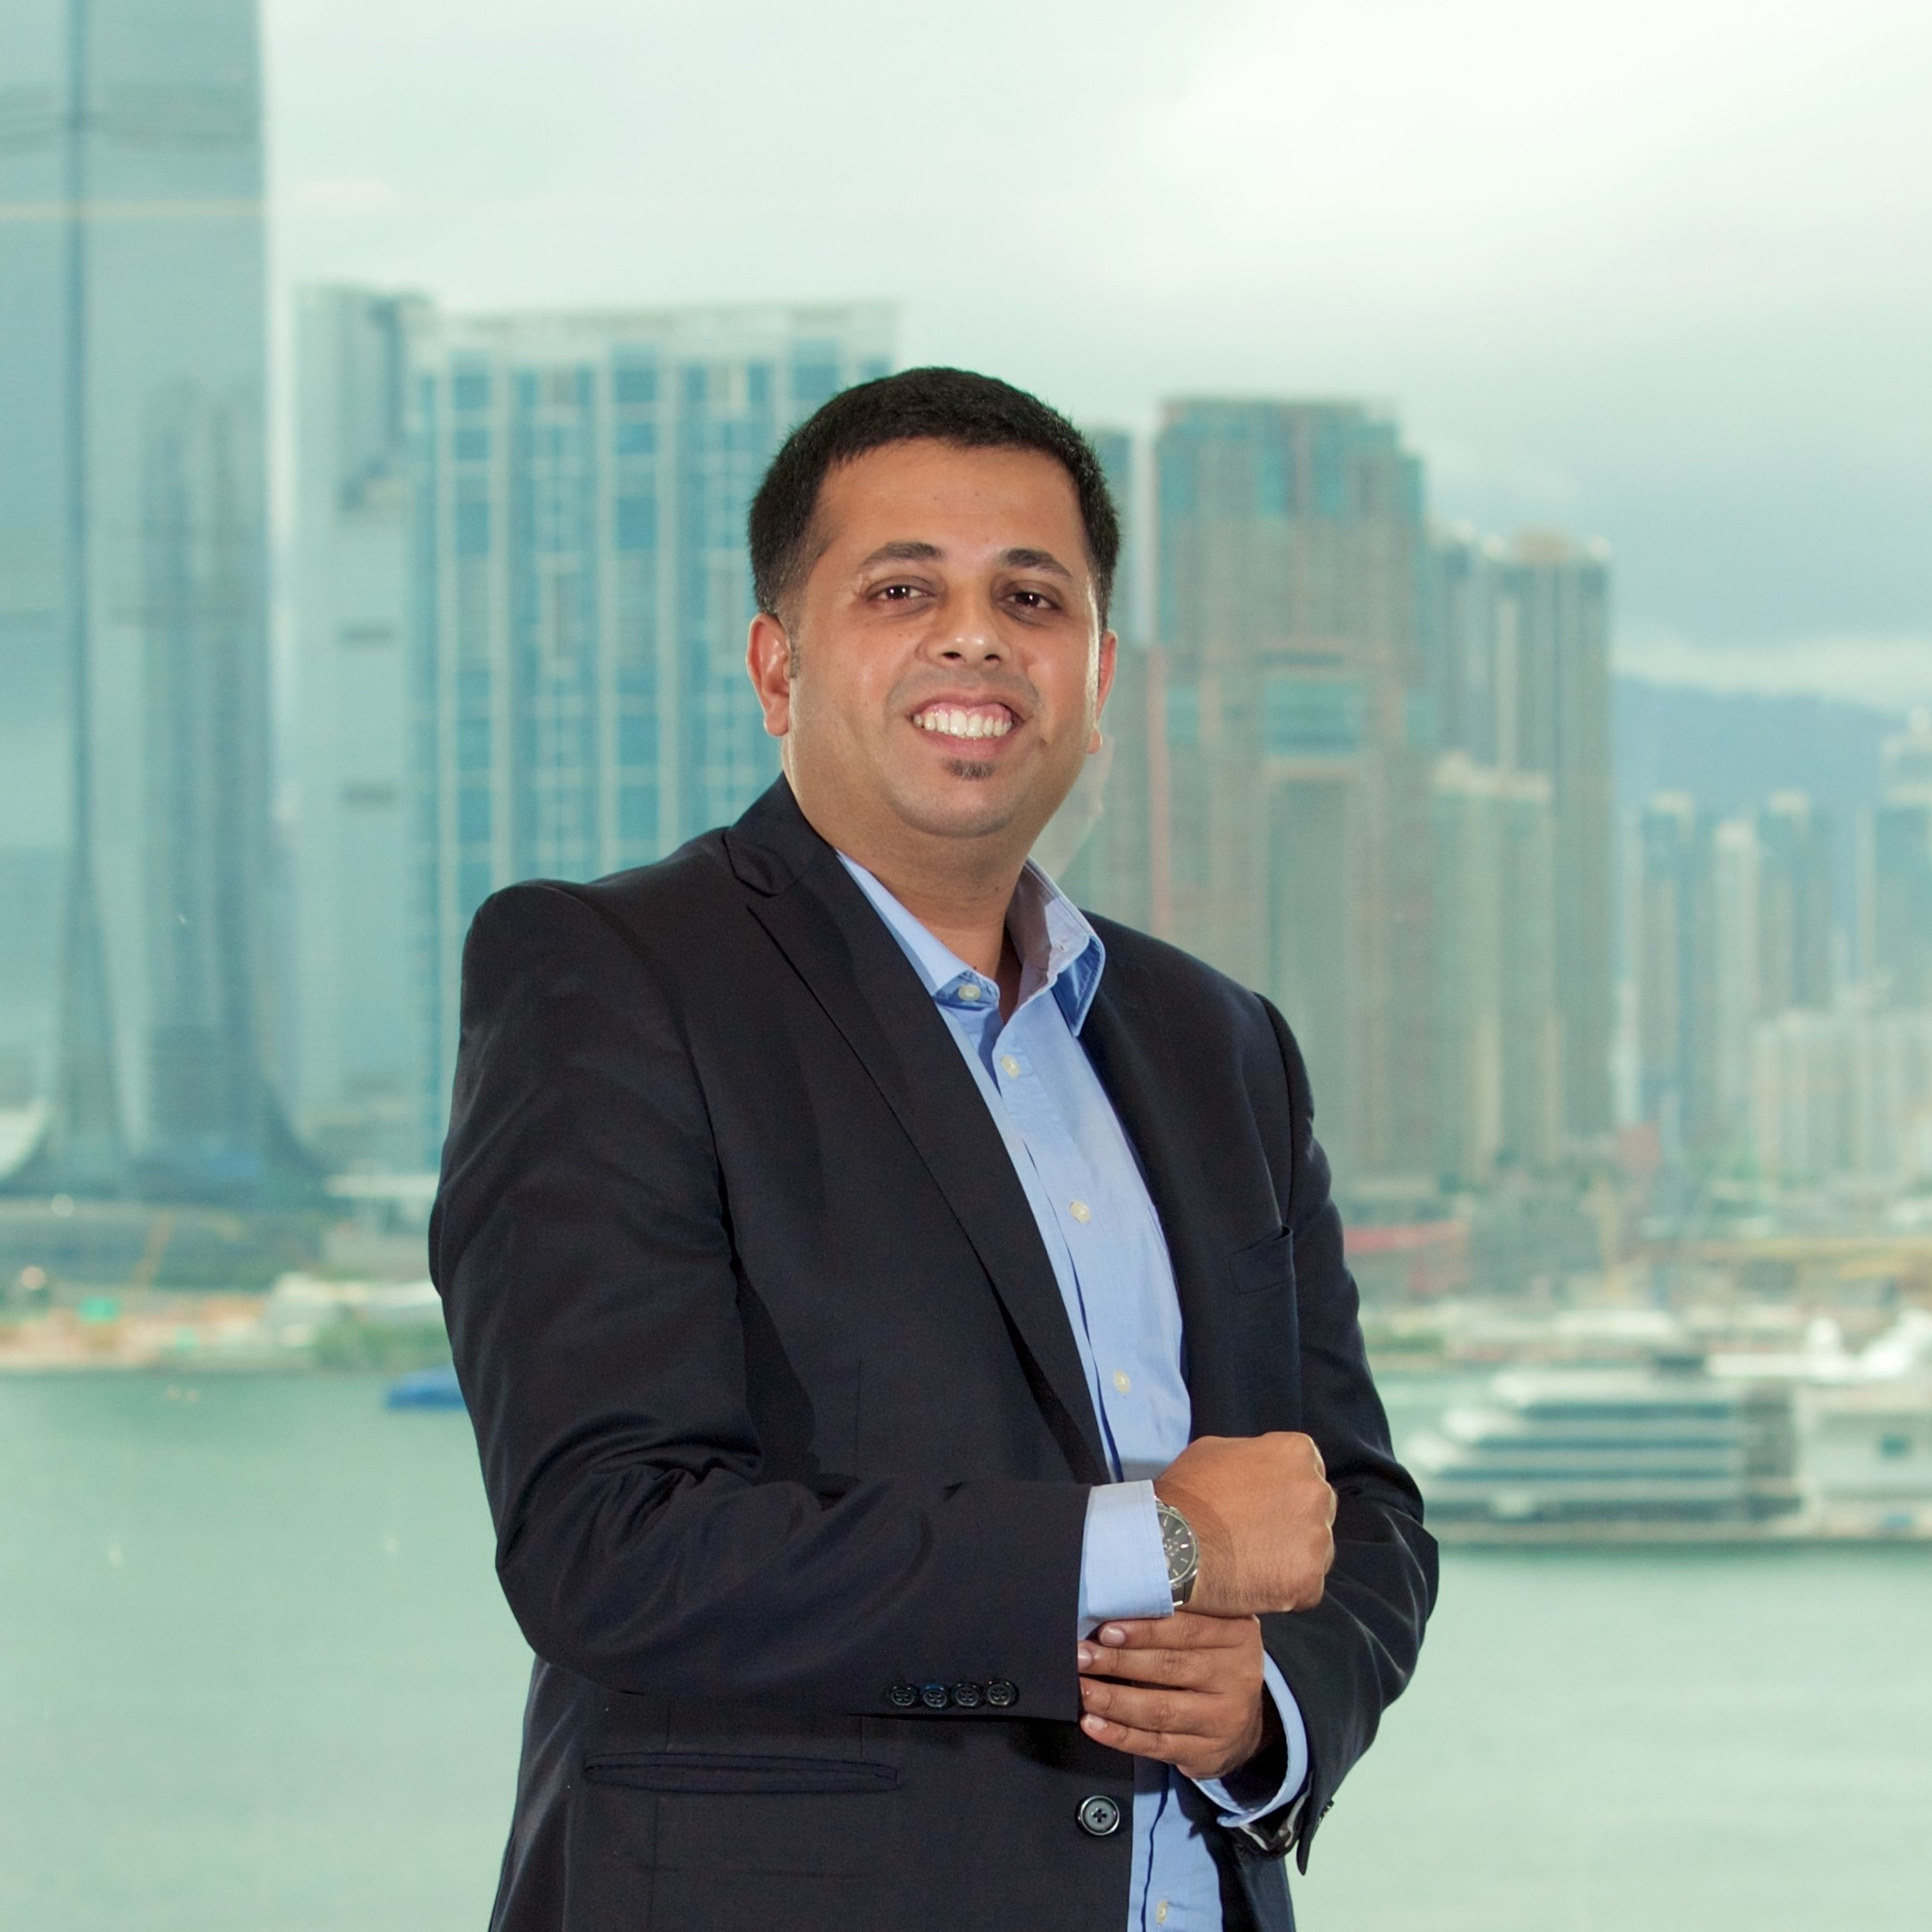 Building Robust FinTech Ecosystems: Q&A with Musheer Ahmed of FinTech Association of HK